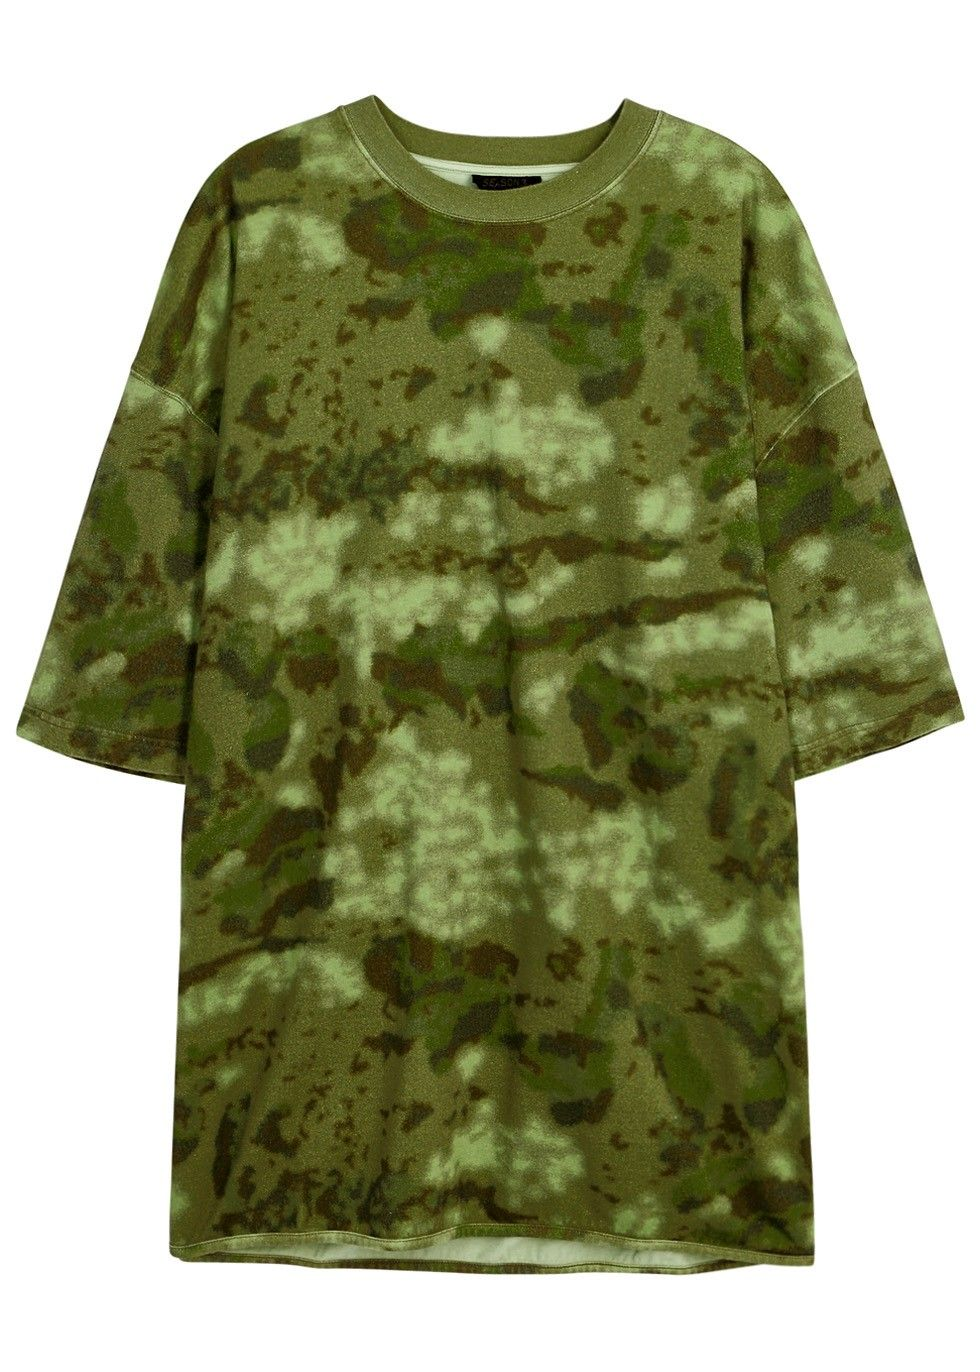 Green dress shirt mens YEEZY SEASON  army green and brown cotton jersey Tshirt Camouflage